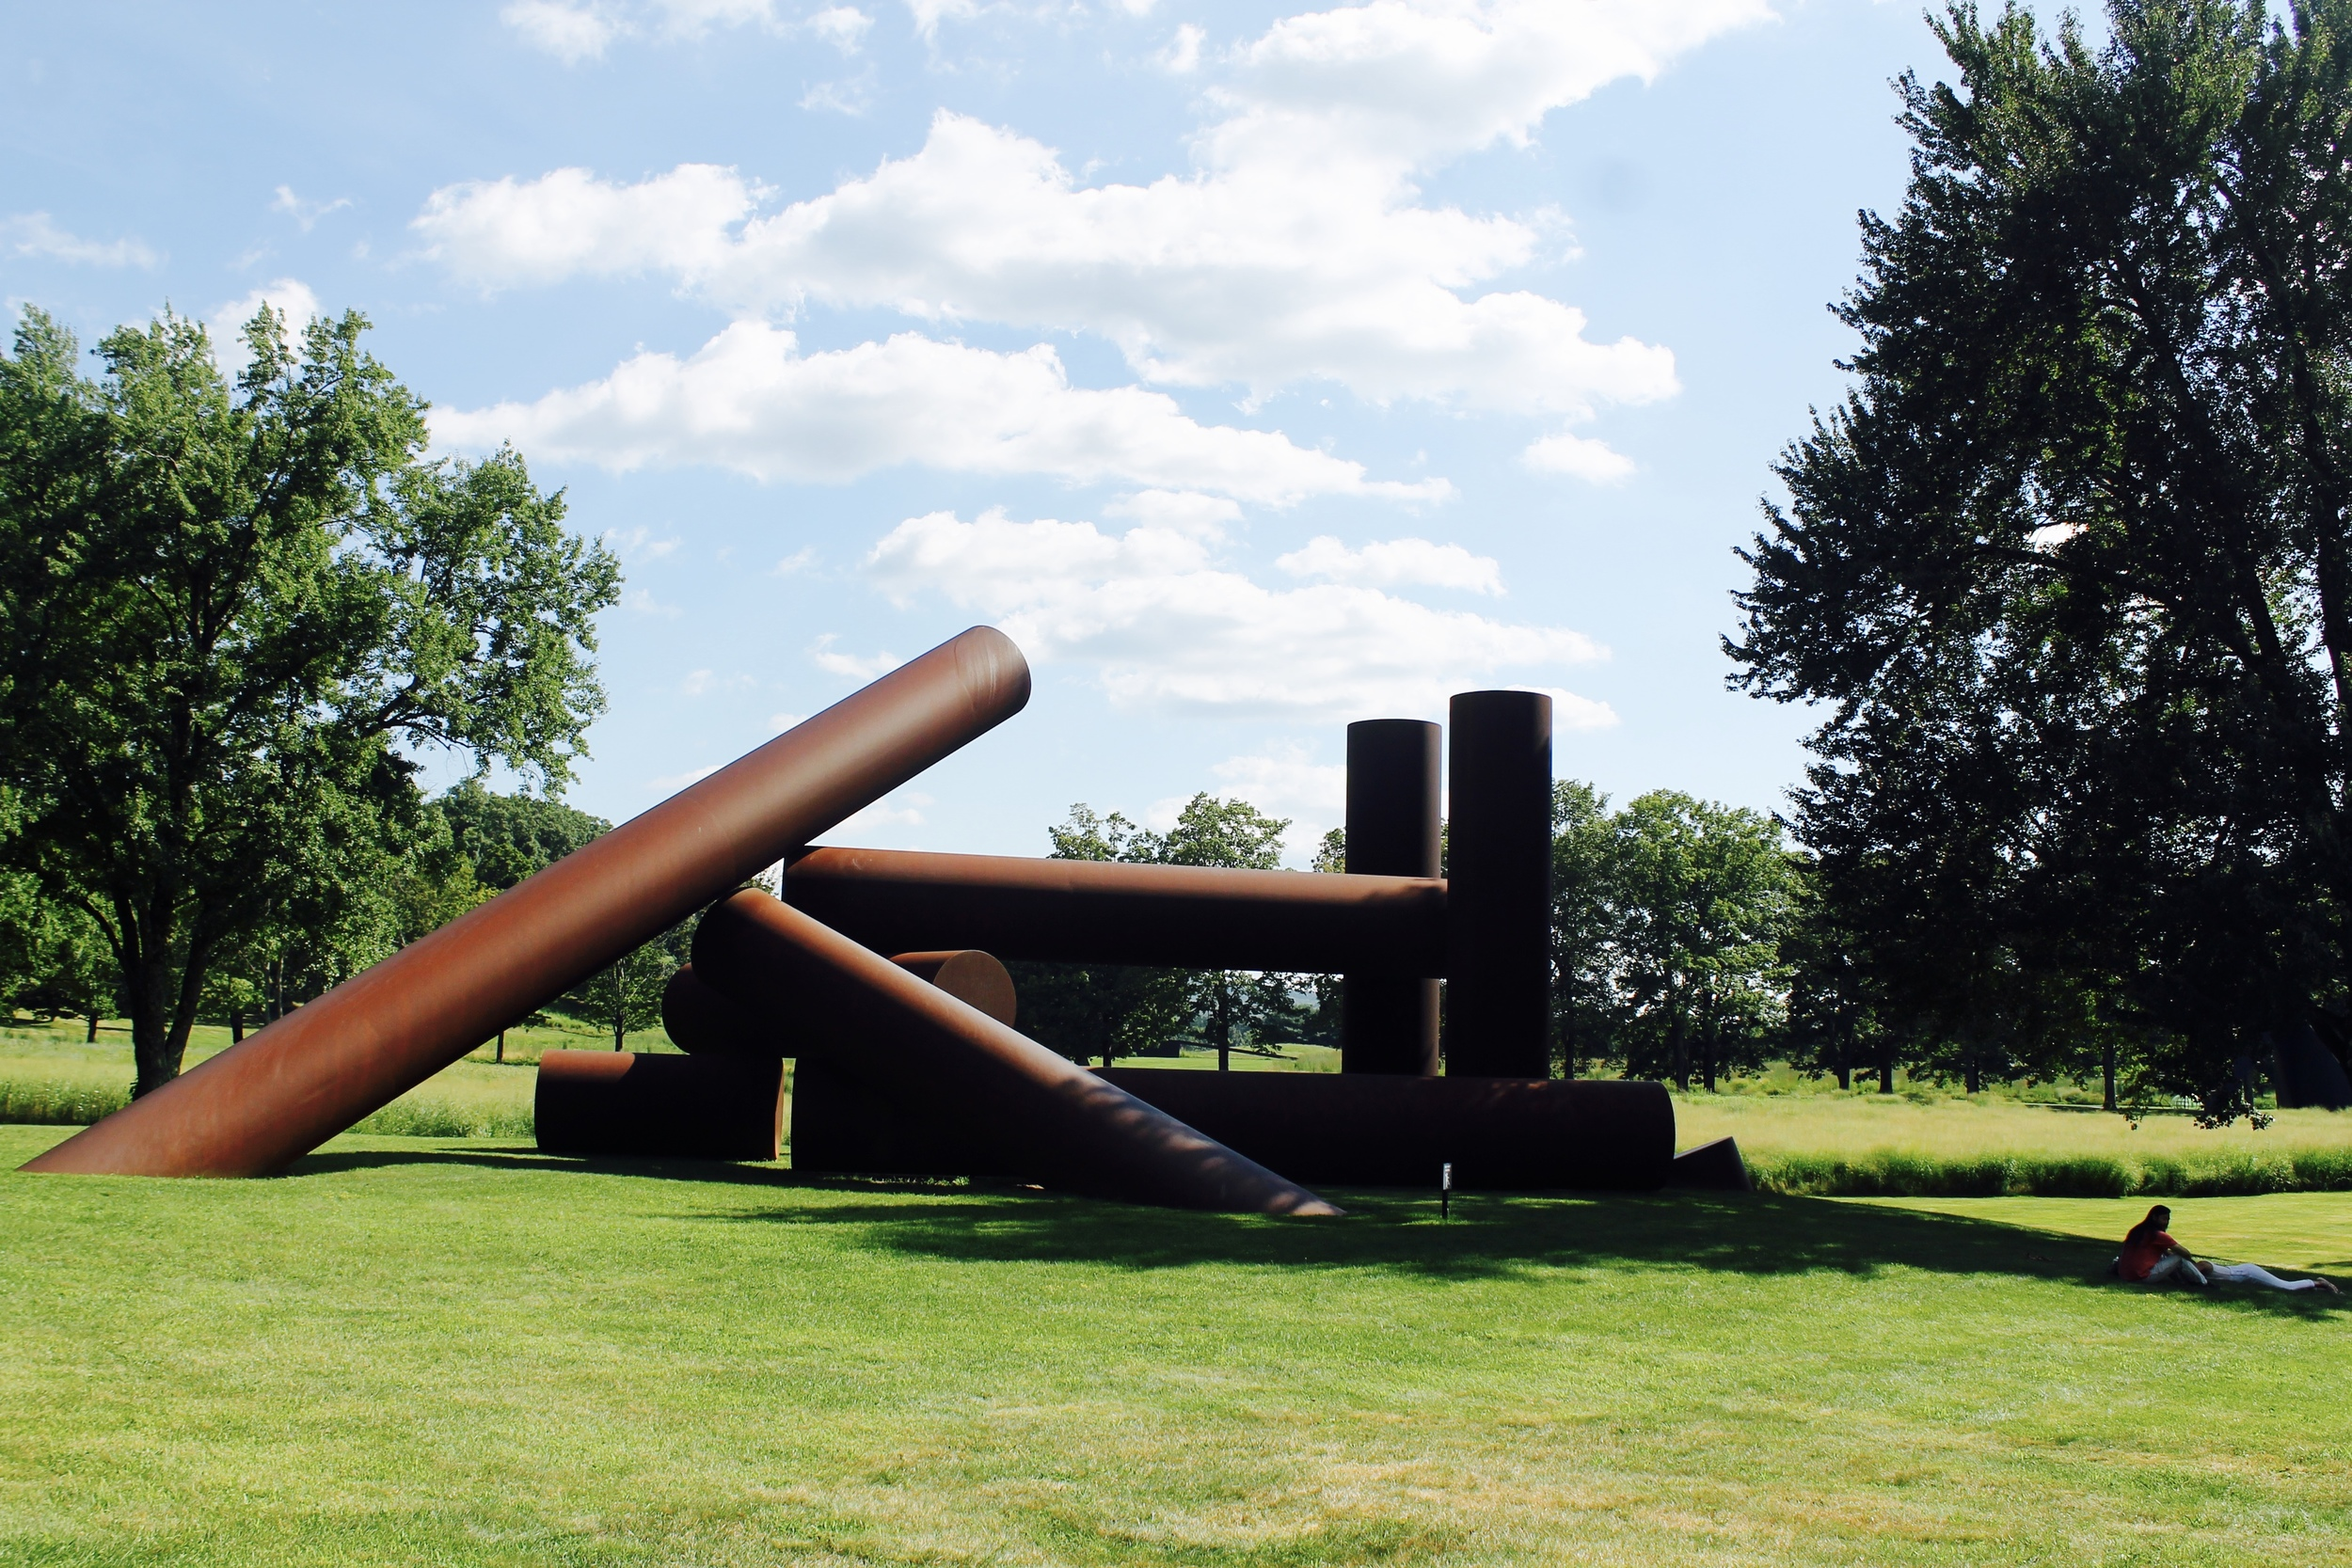 Discovering the Hudson Valley area :: Storm King Art Center - All images property of Jessica Gordon Ryan/The Entertaining House